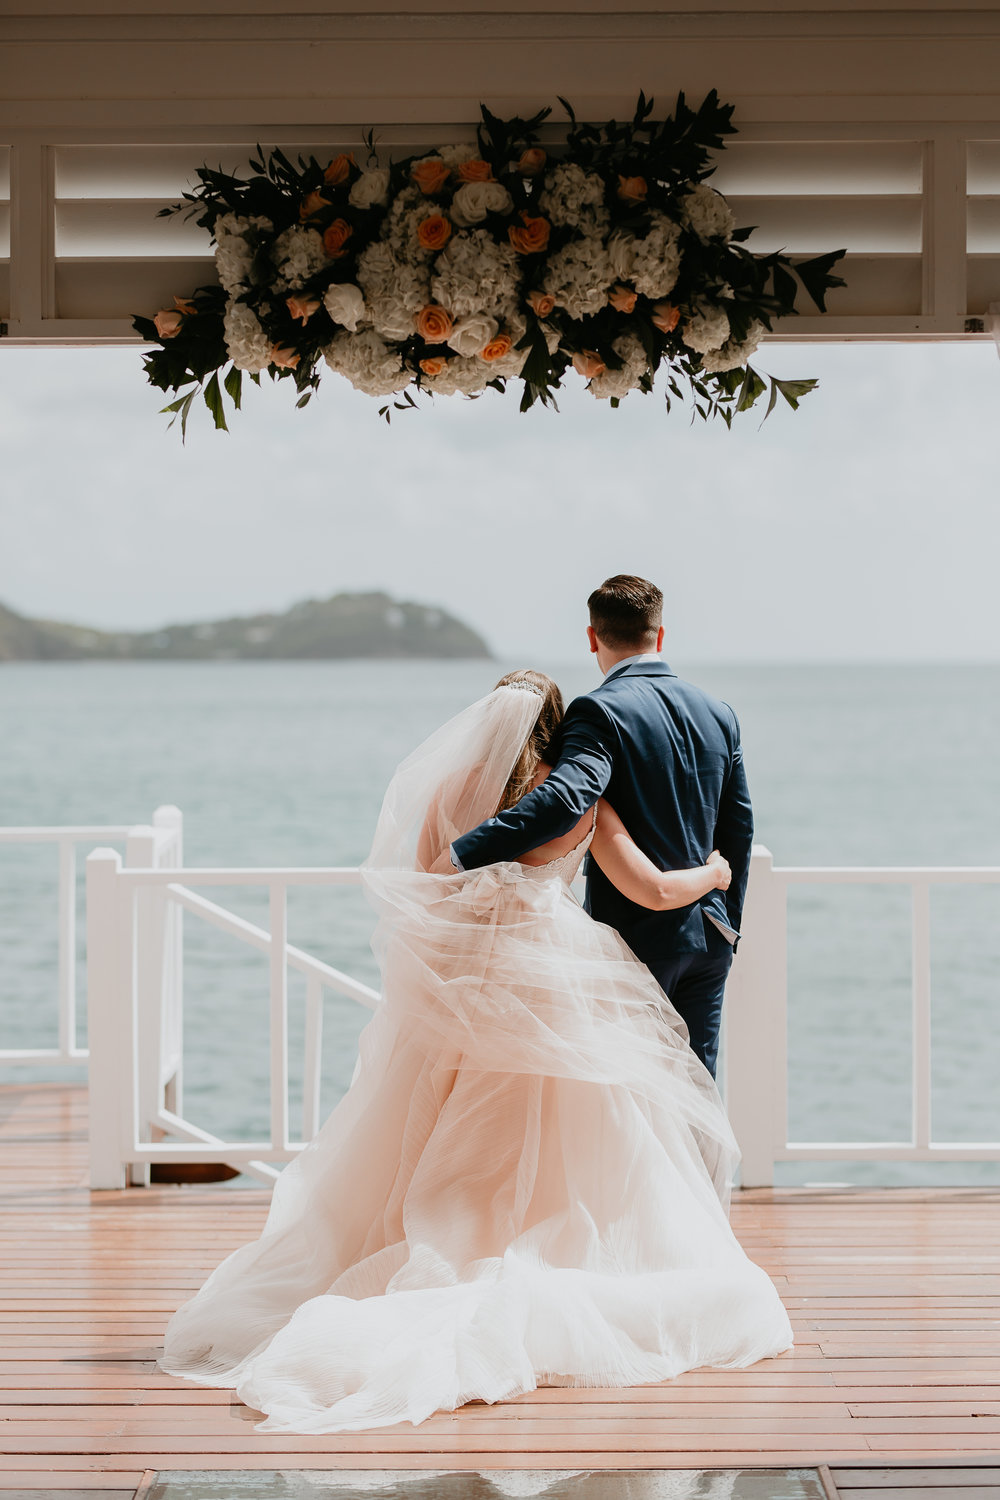 nicole-daacke-photography-destination-wedding-in-st-lucia-sandals-la-toc-intimate-island-wedding-carribean-elopement-photographer-chill-island-wedding-35.jpg